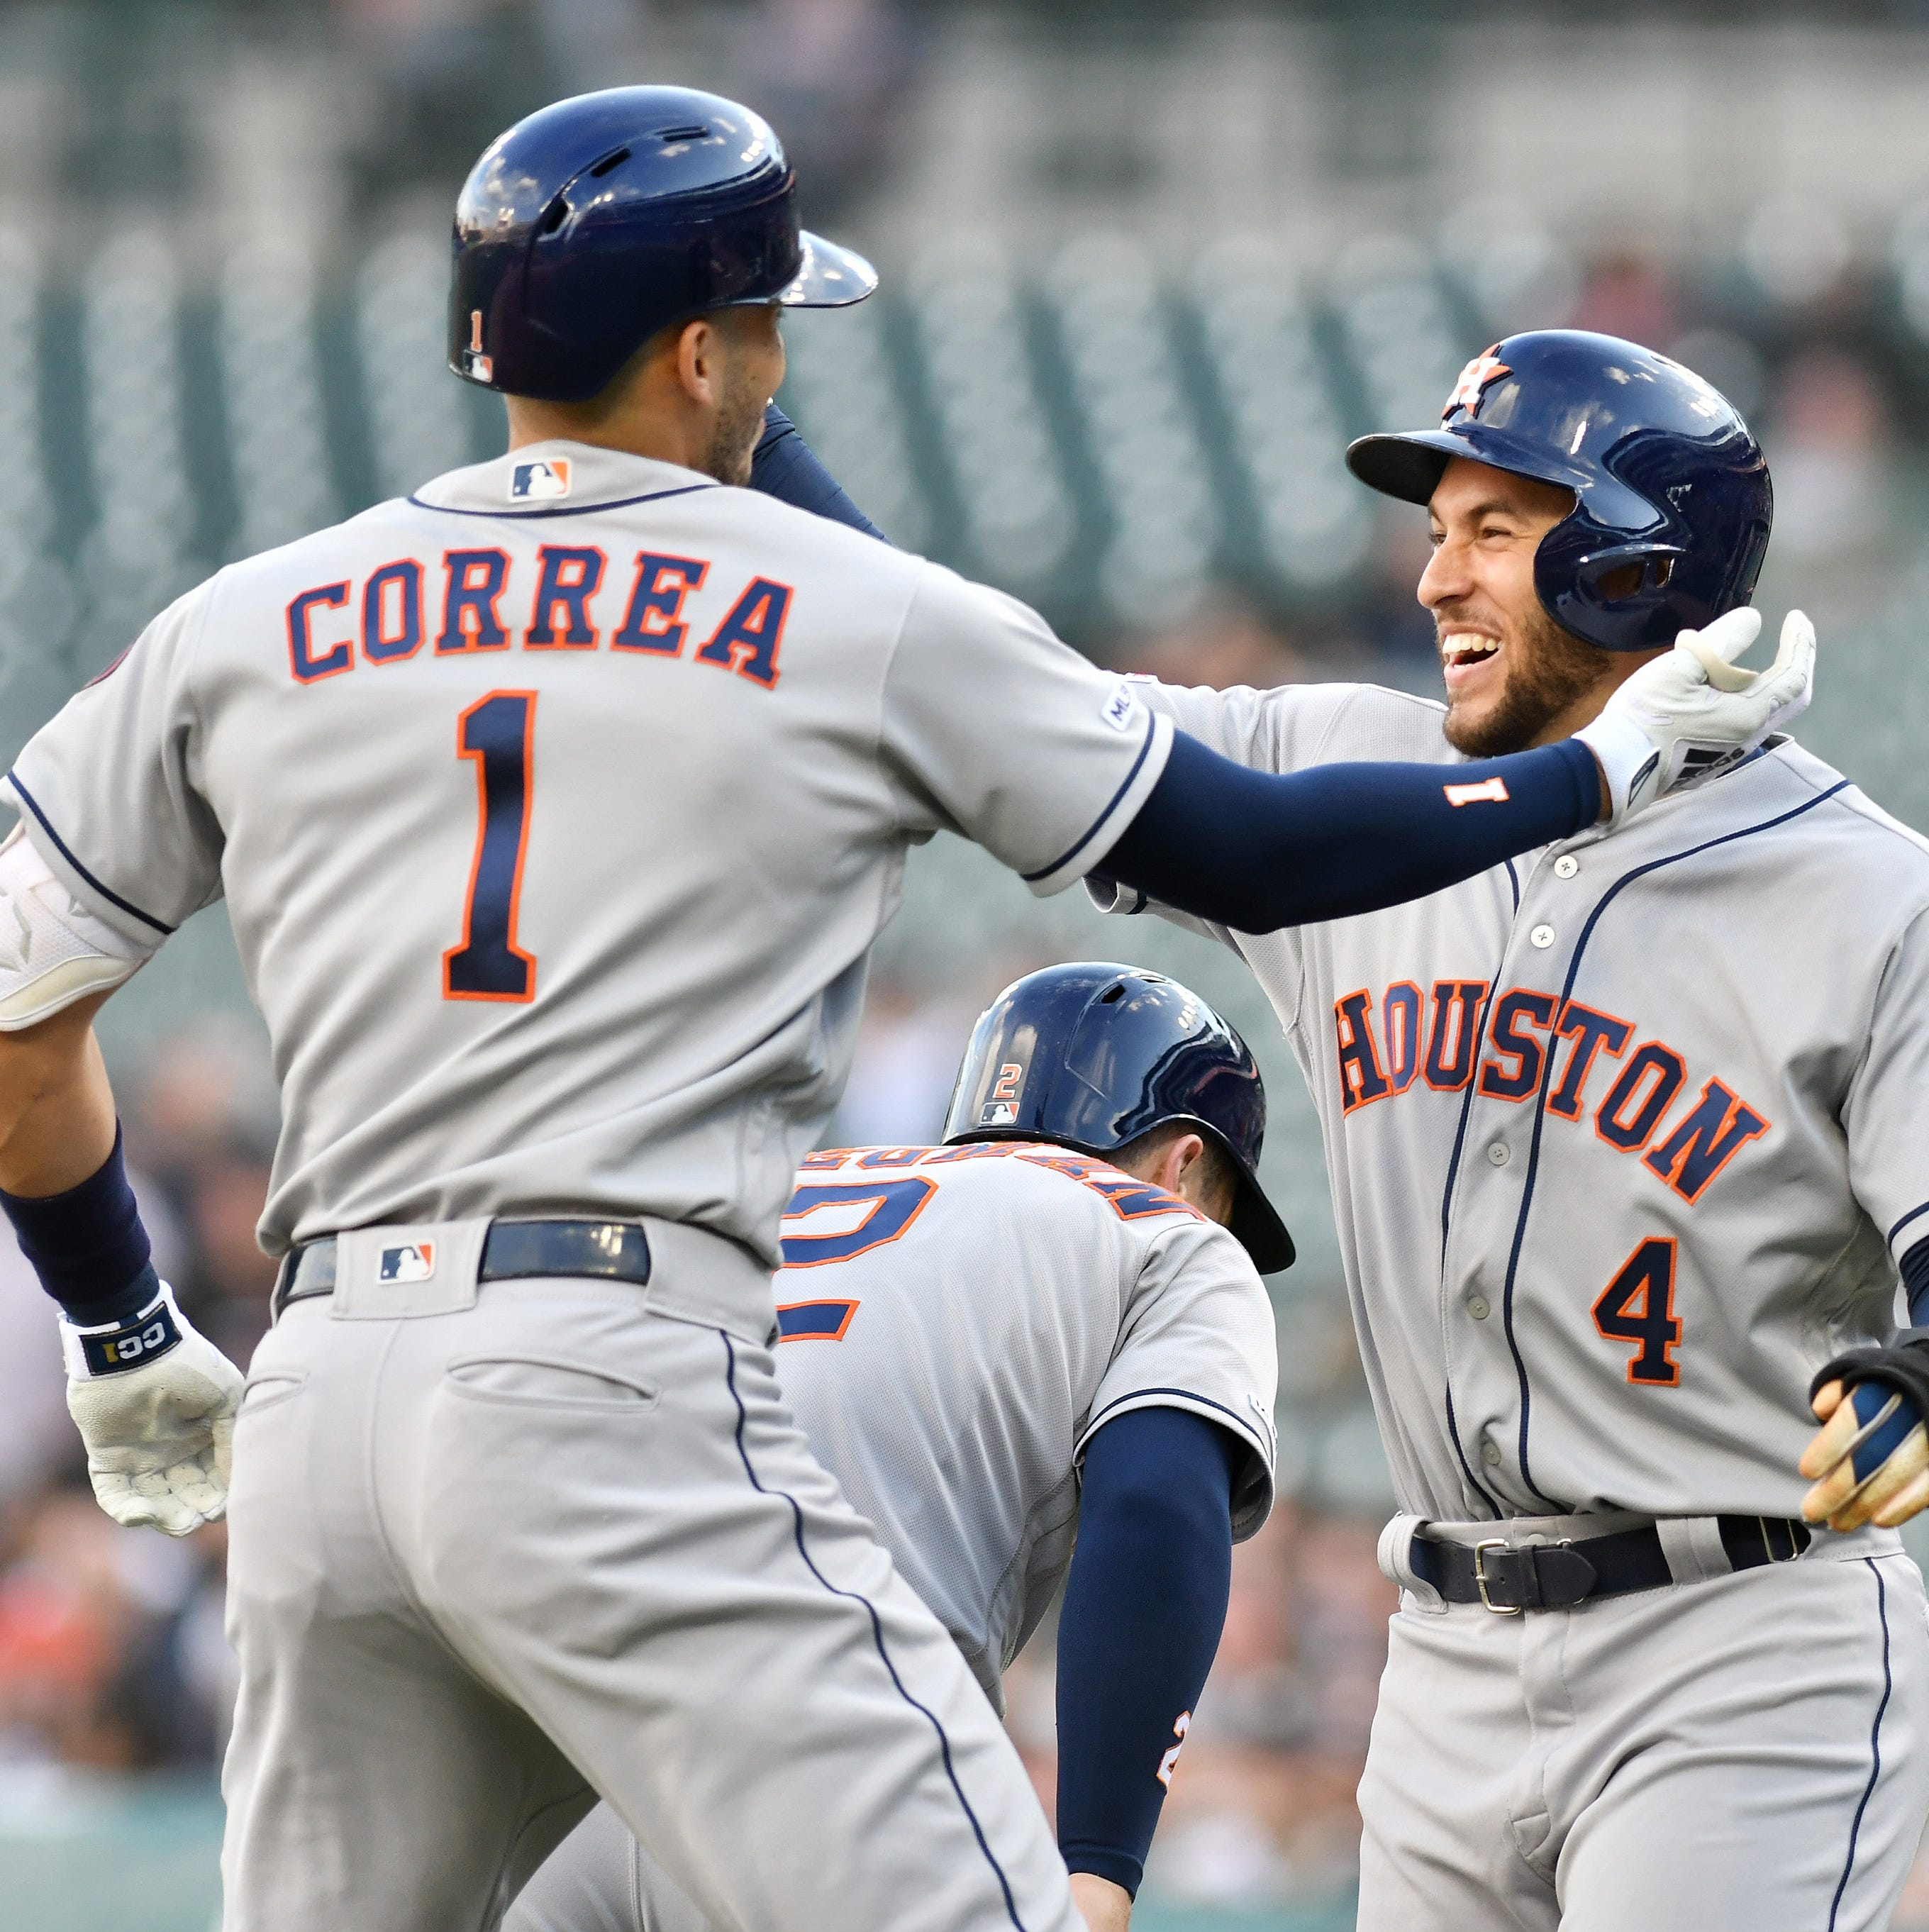 'Not a lot of options': Tigers' threadbare pitching staff no match for hard-hitting Astros